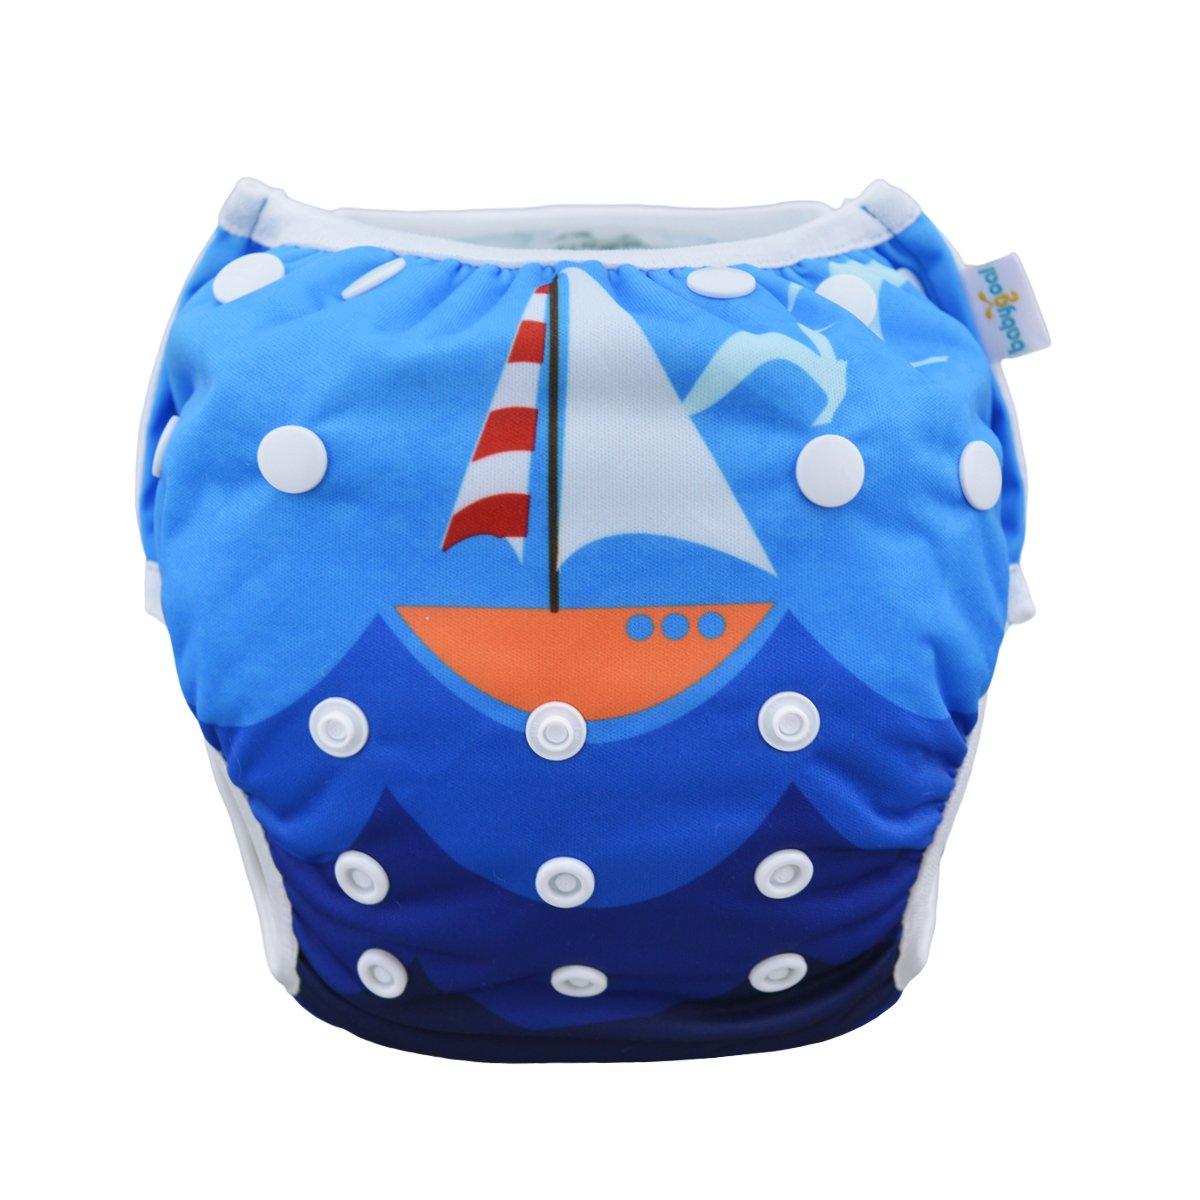 Baby Shower Gift /& Swimming Lessons babygoal Baby Reusable Swim Diaper Washable and Adjustable for Babies 0-2 Years